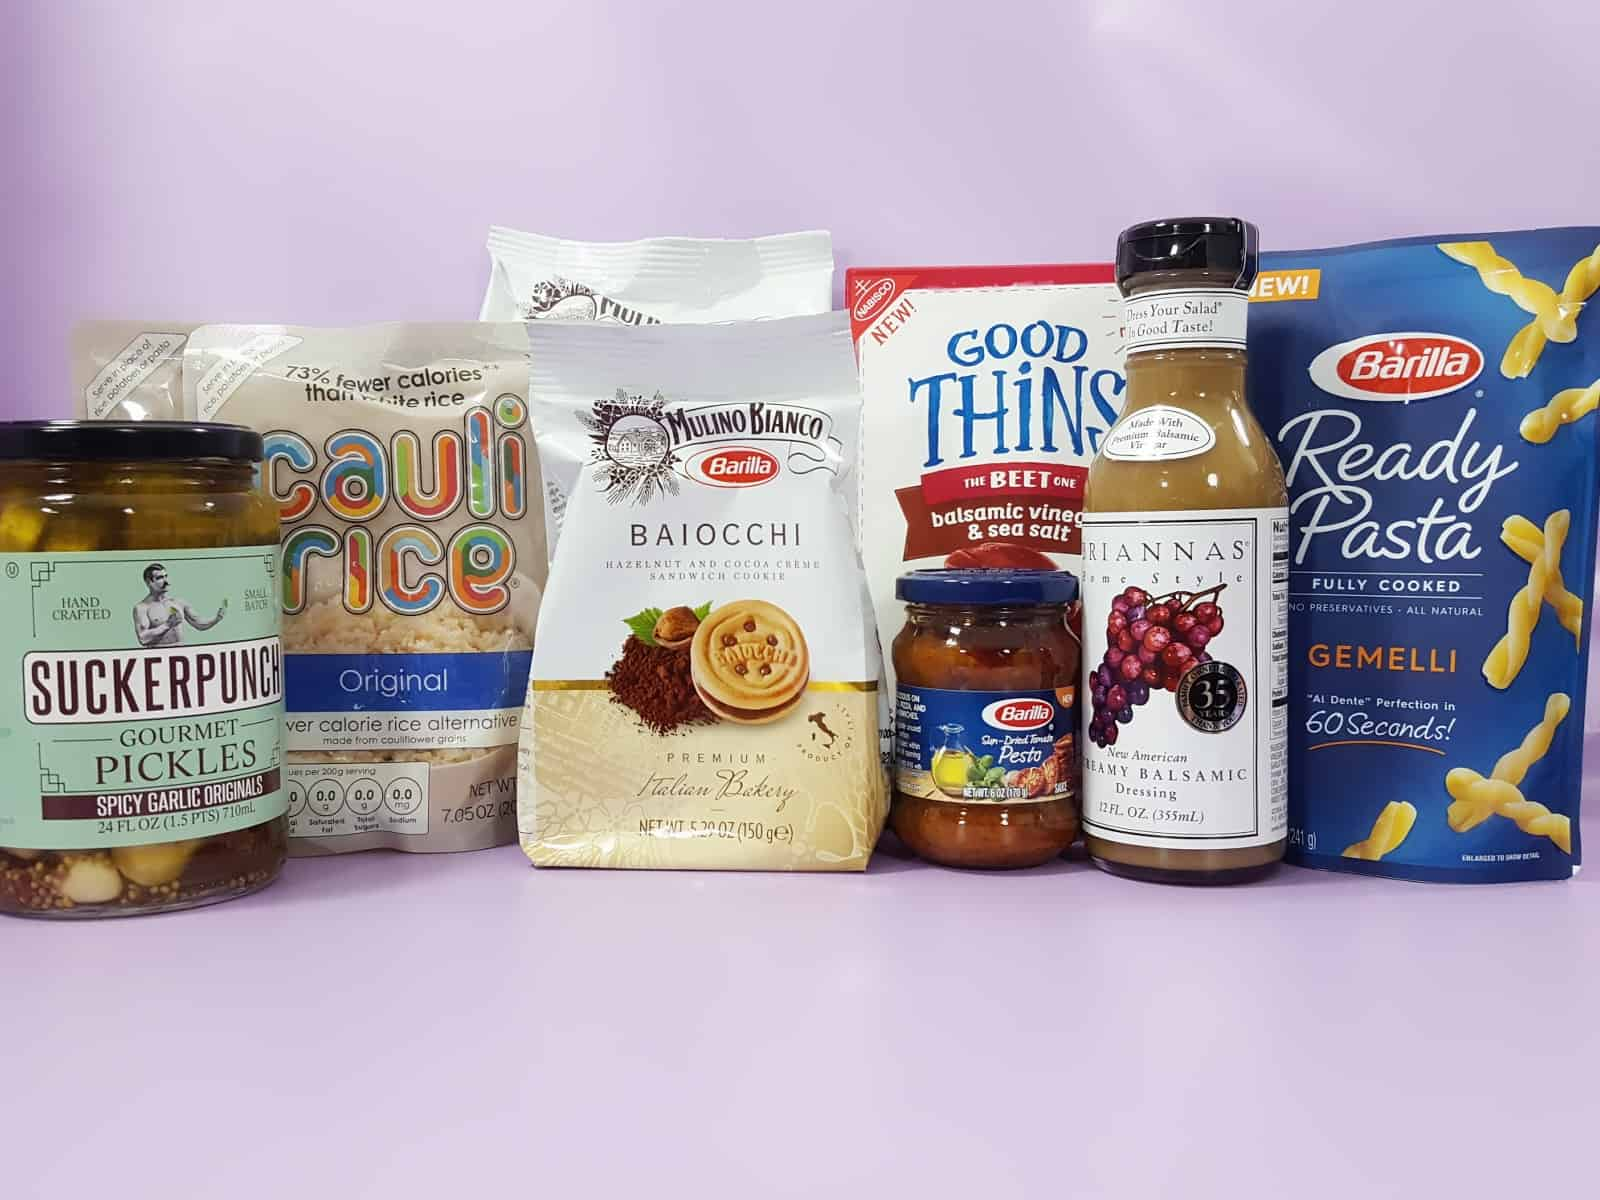 DegustaBox December 2017 Subscription Box Review + First Box 50% Off Coupon!